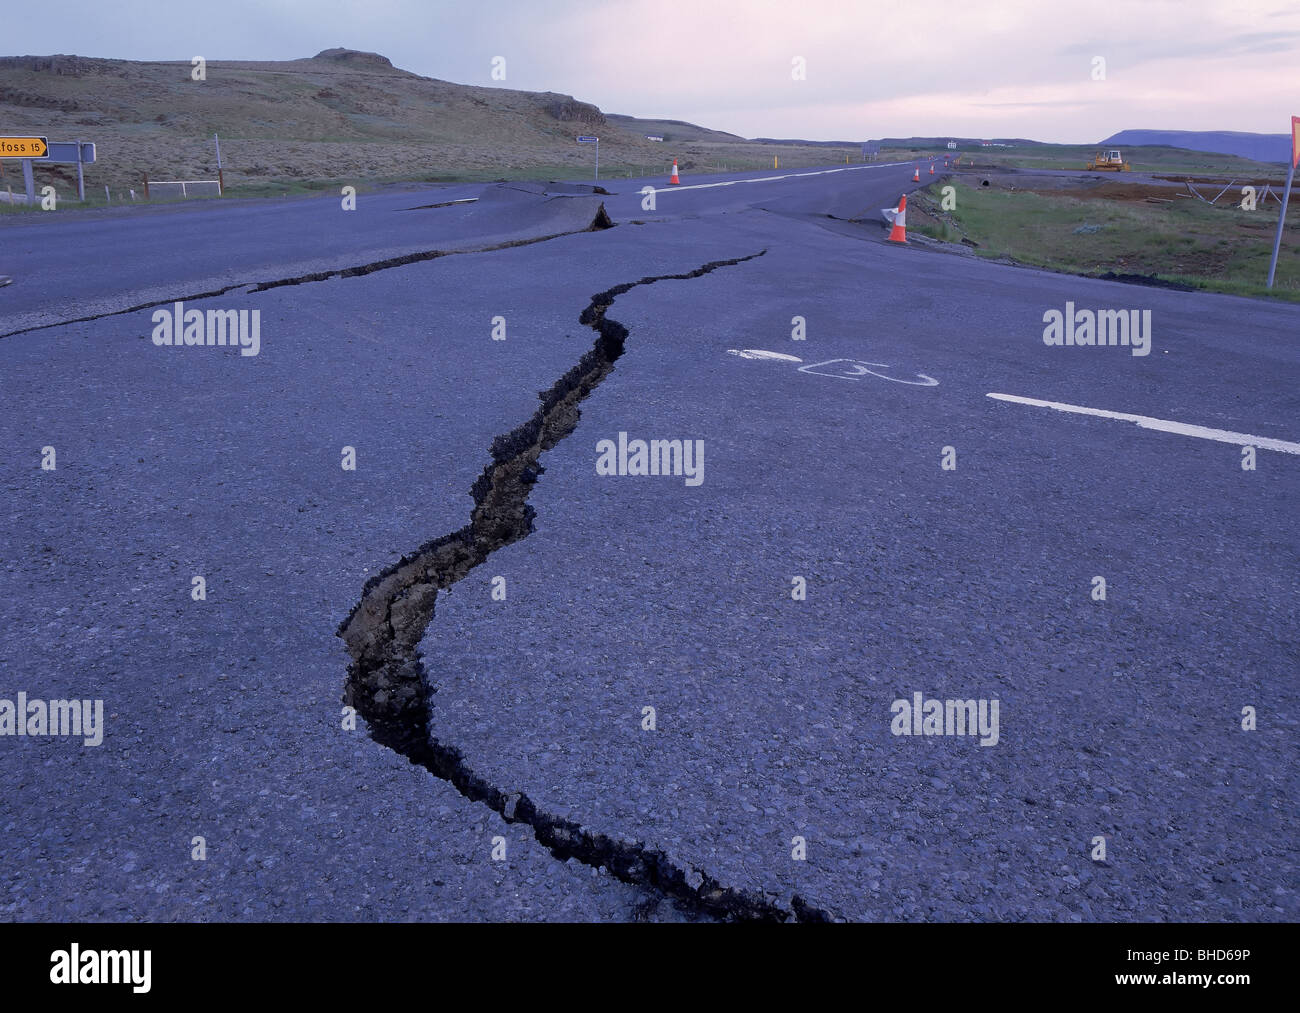 Damage in road from earthquakes, Iceland - Stock Image